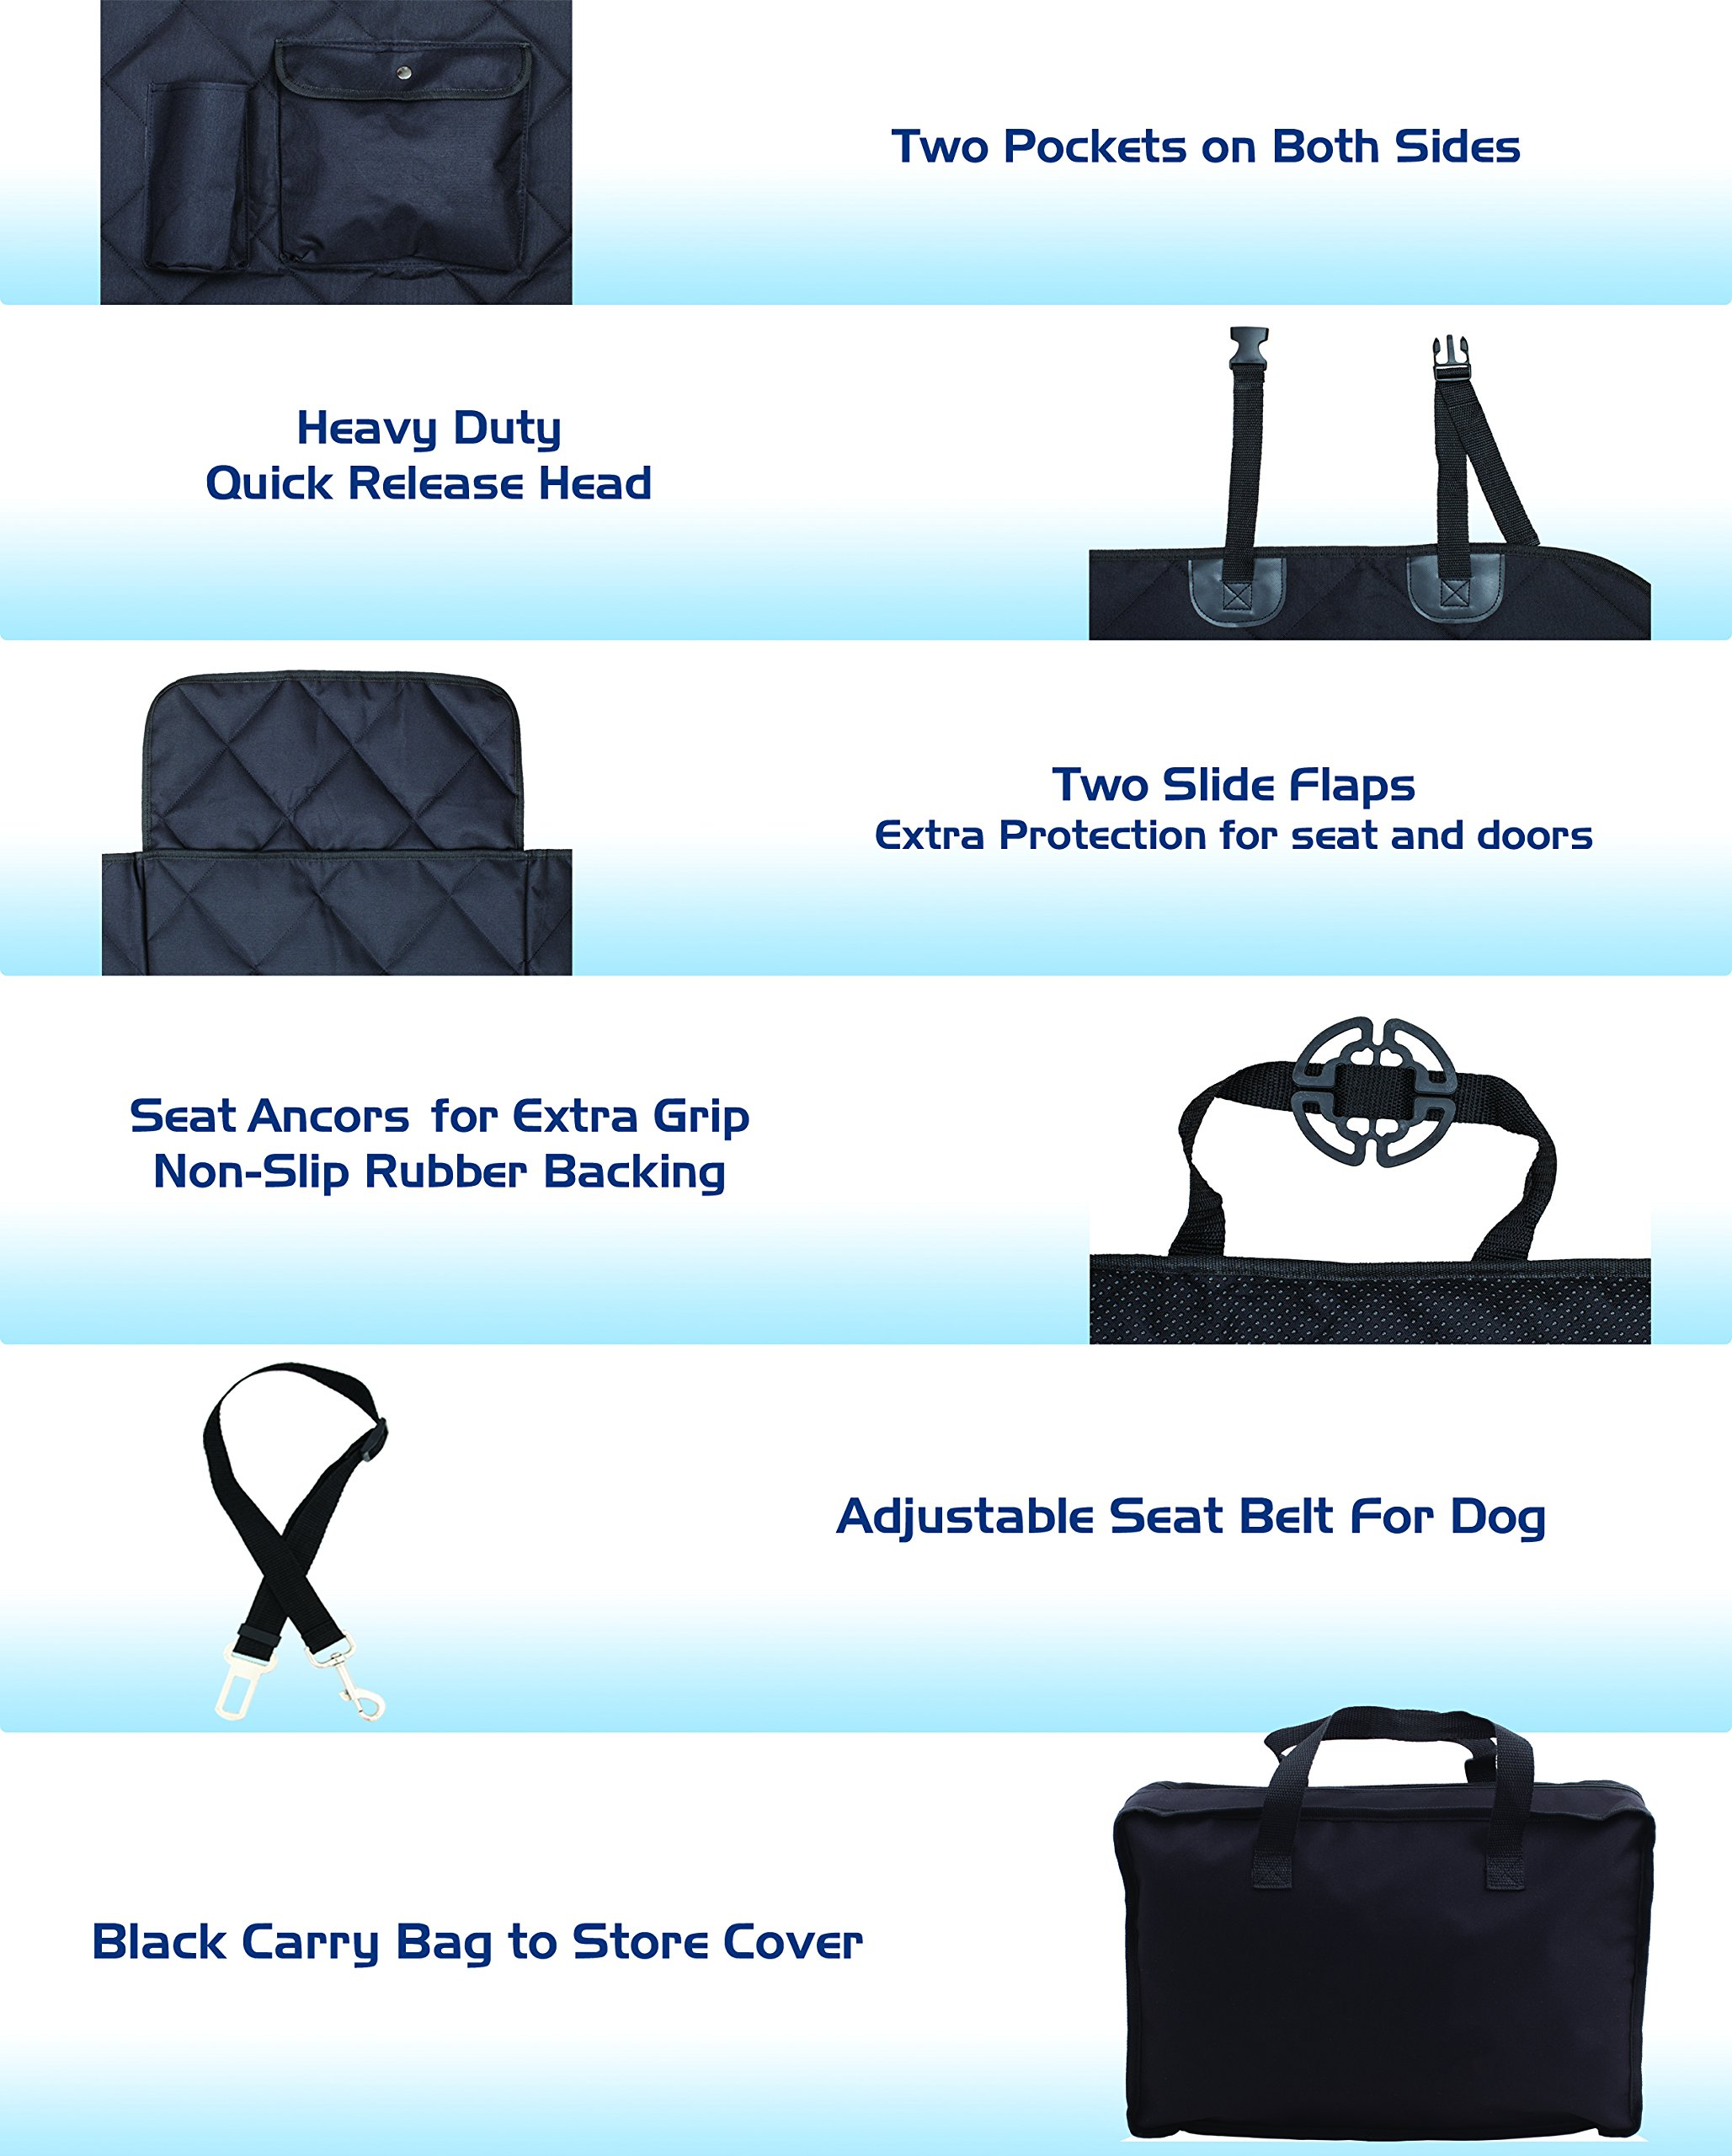 EVOest Dog Car Seat Cover for Cars/Trucks/SUV's,Hammock Convertible, Waterproof Pet Back Seat Protector with Extra Side Flaps, Bonus Pet Seat Belt & Carry Bag (Medium) by EVOest (Image #6)